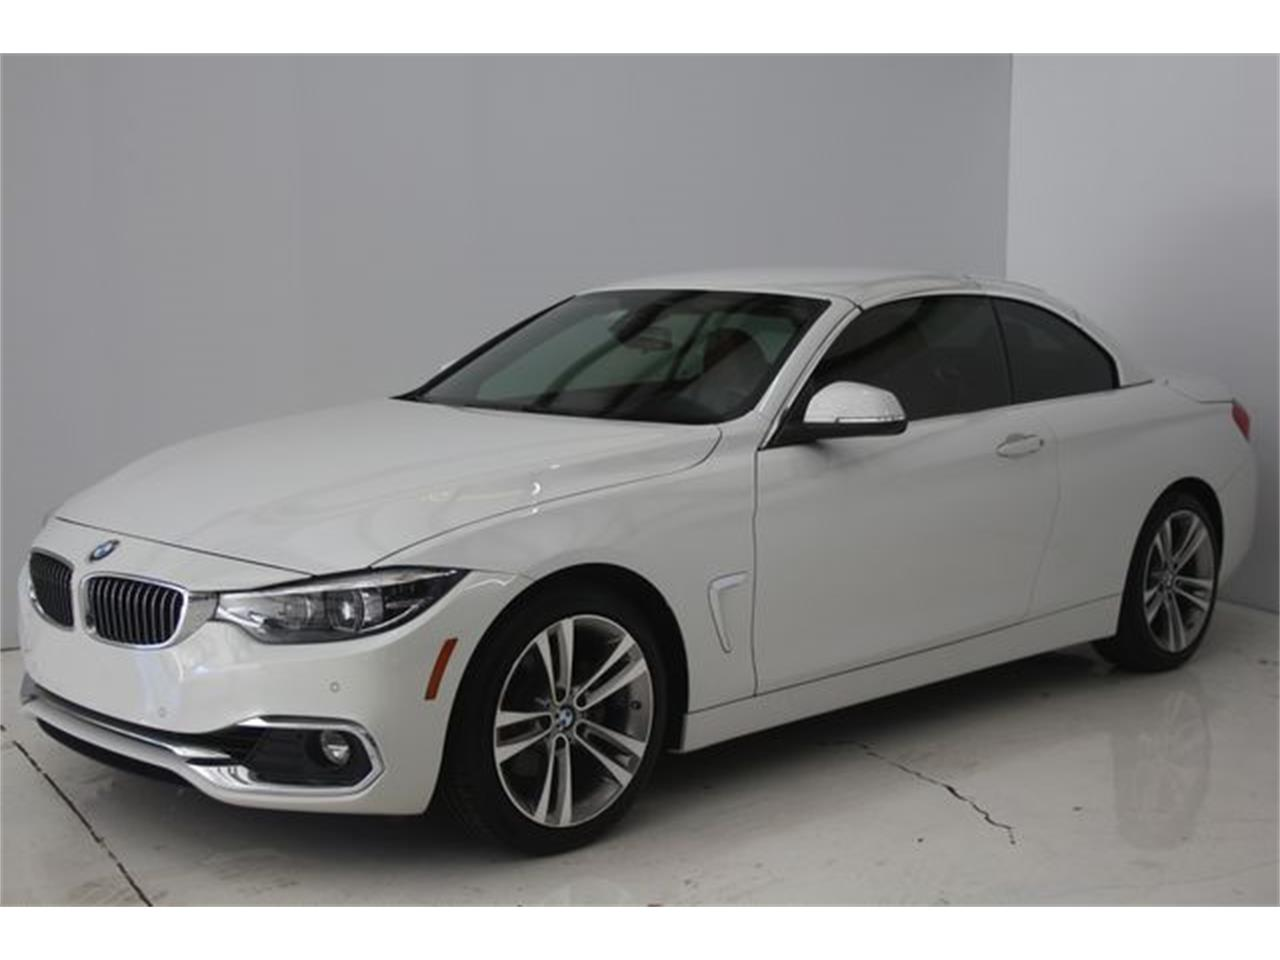 for sale 2018 bmw 430i in houston, texas cars - houston, tx at geebo